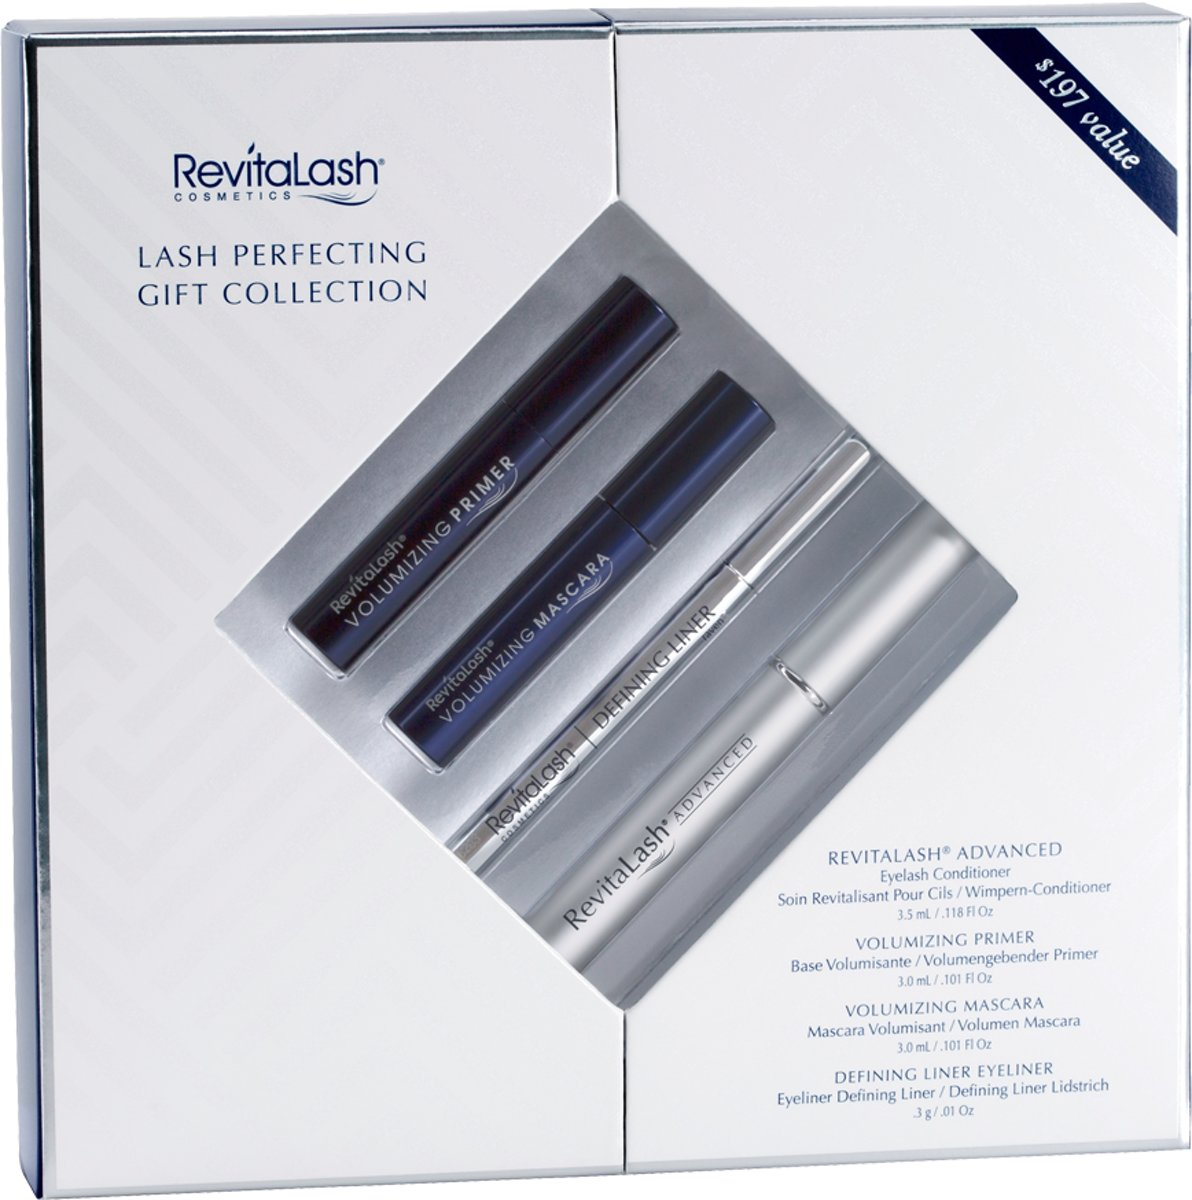 3.5ml RevitaLash Lash Perfecting Gift Collection